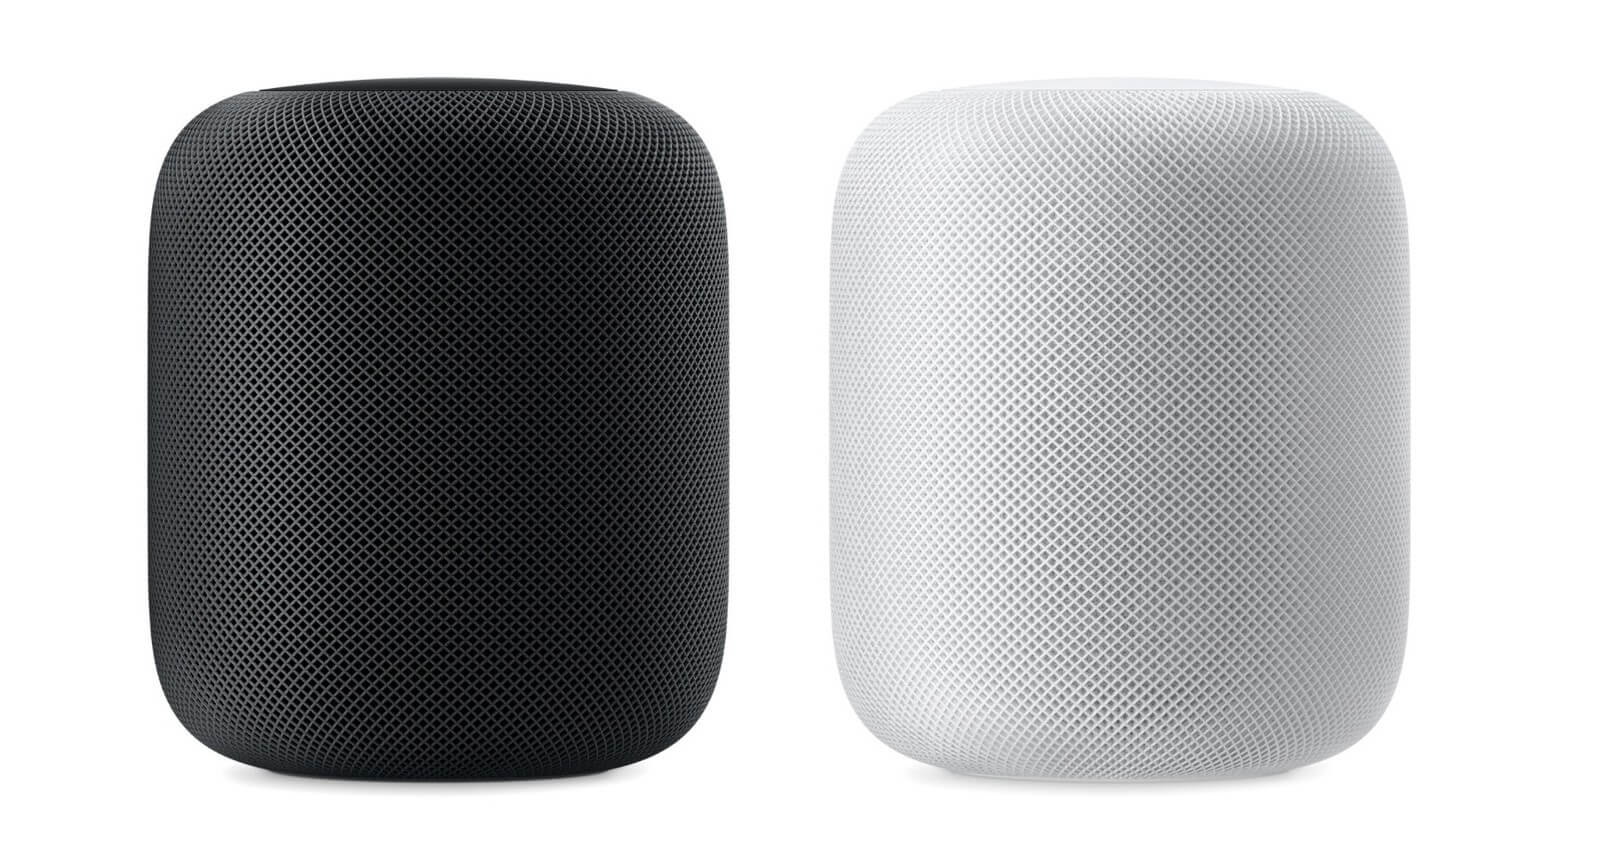 Apple Re-launches The Update Of HomePod To Avoid Bricking Speakers